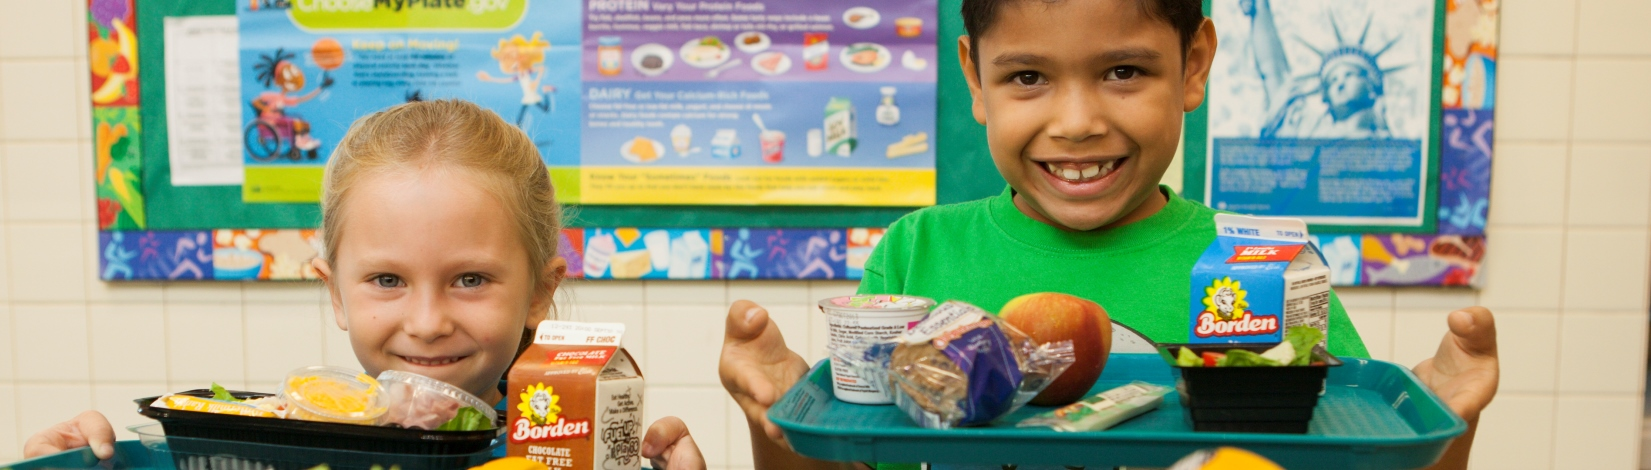 School children with healthy lunches on their trays